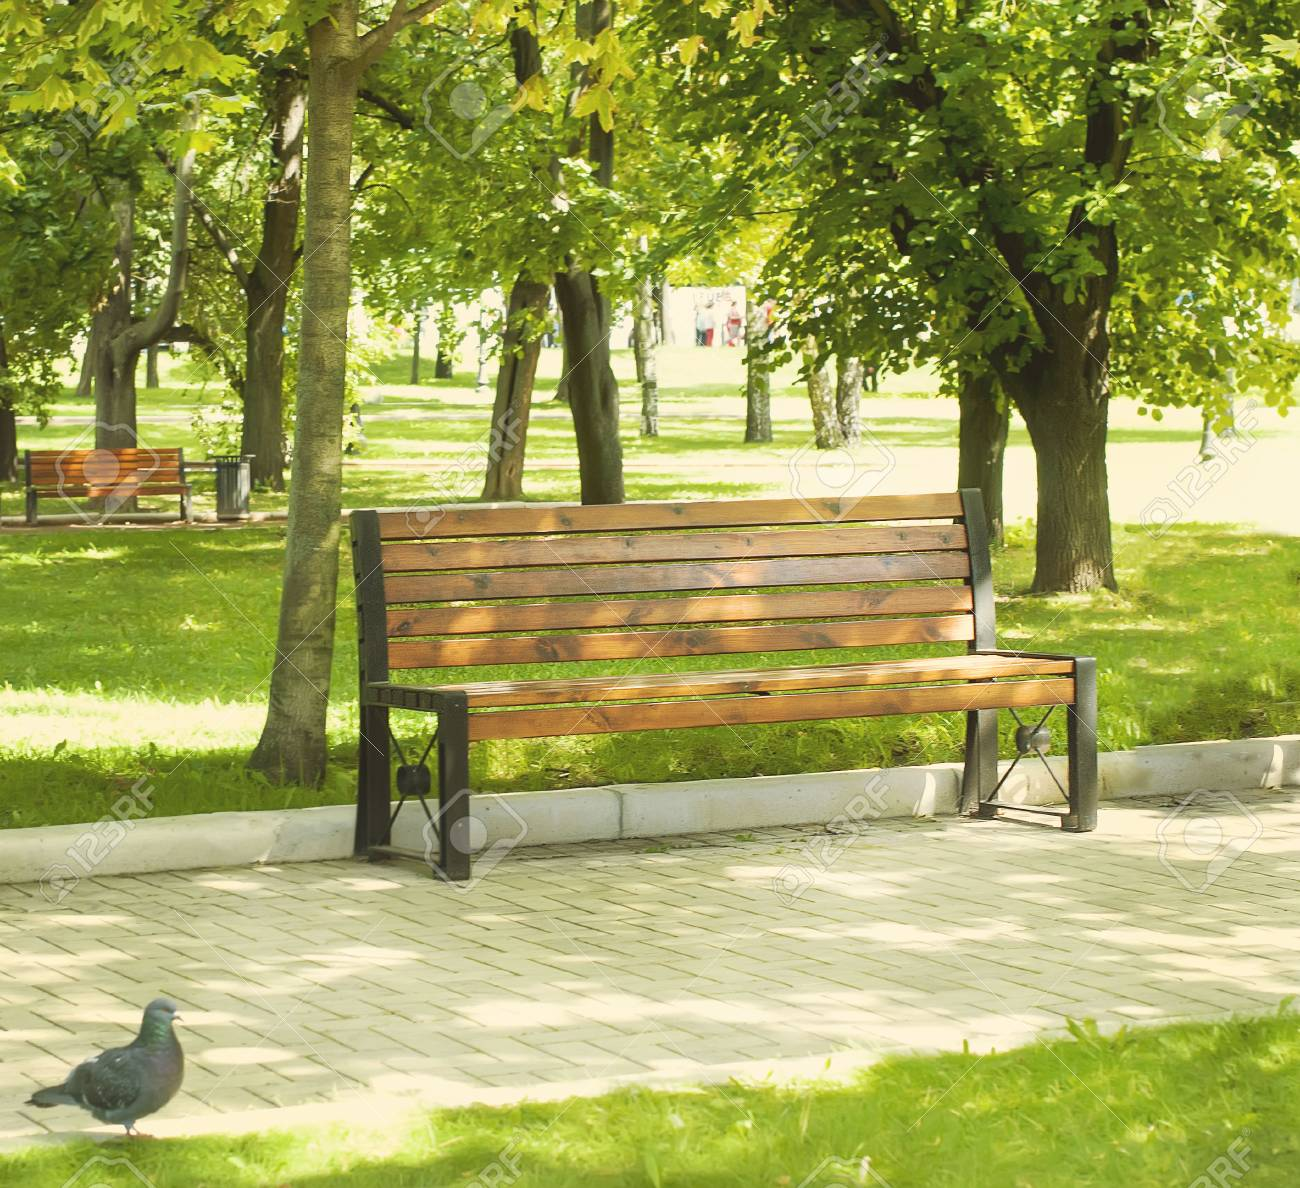 A Park Bench In A Green Park With Trees In Summer Stock Photo